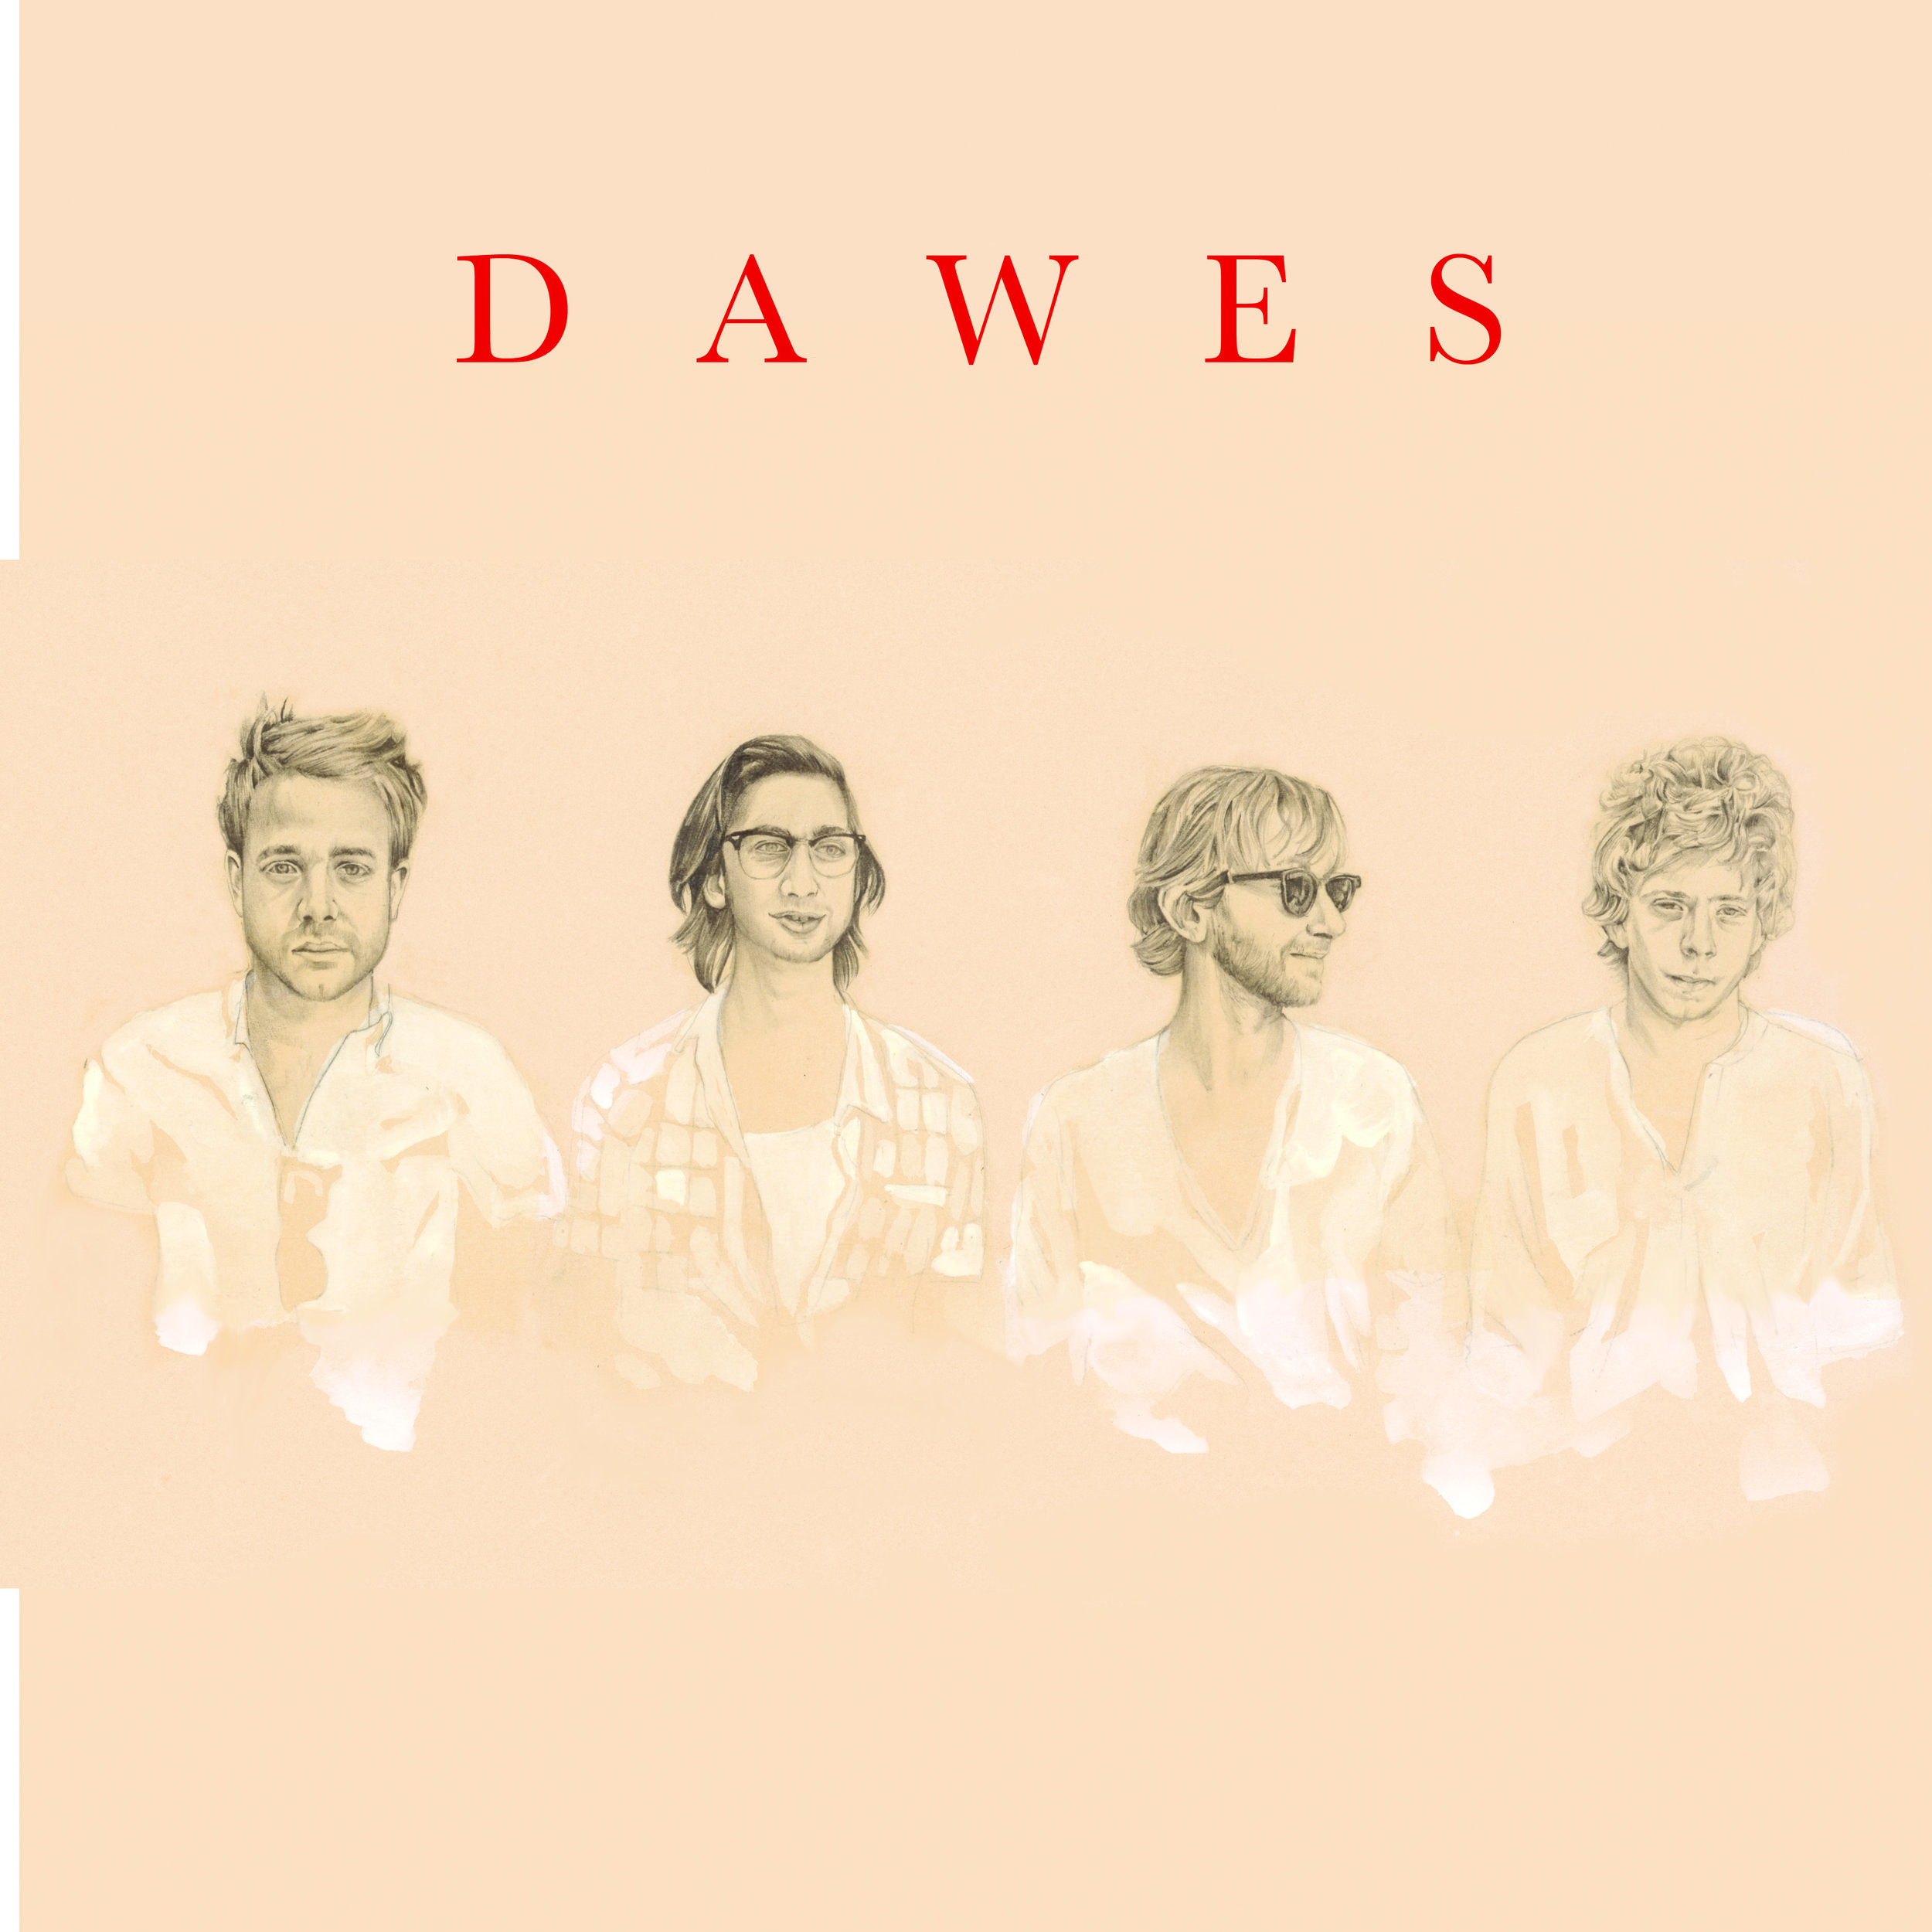 Dawes Album Cover, 2009